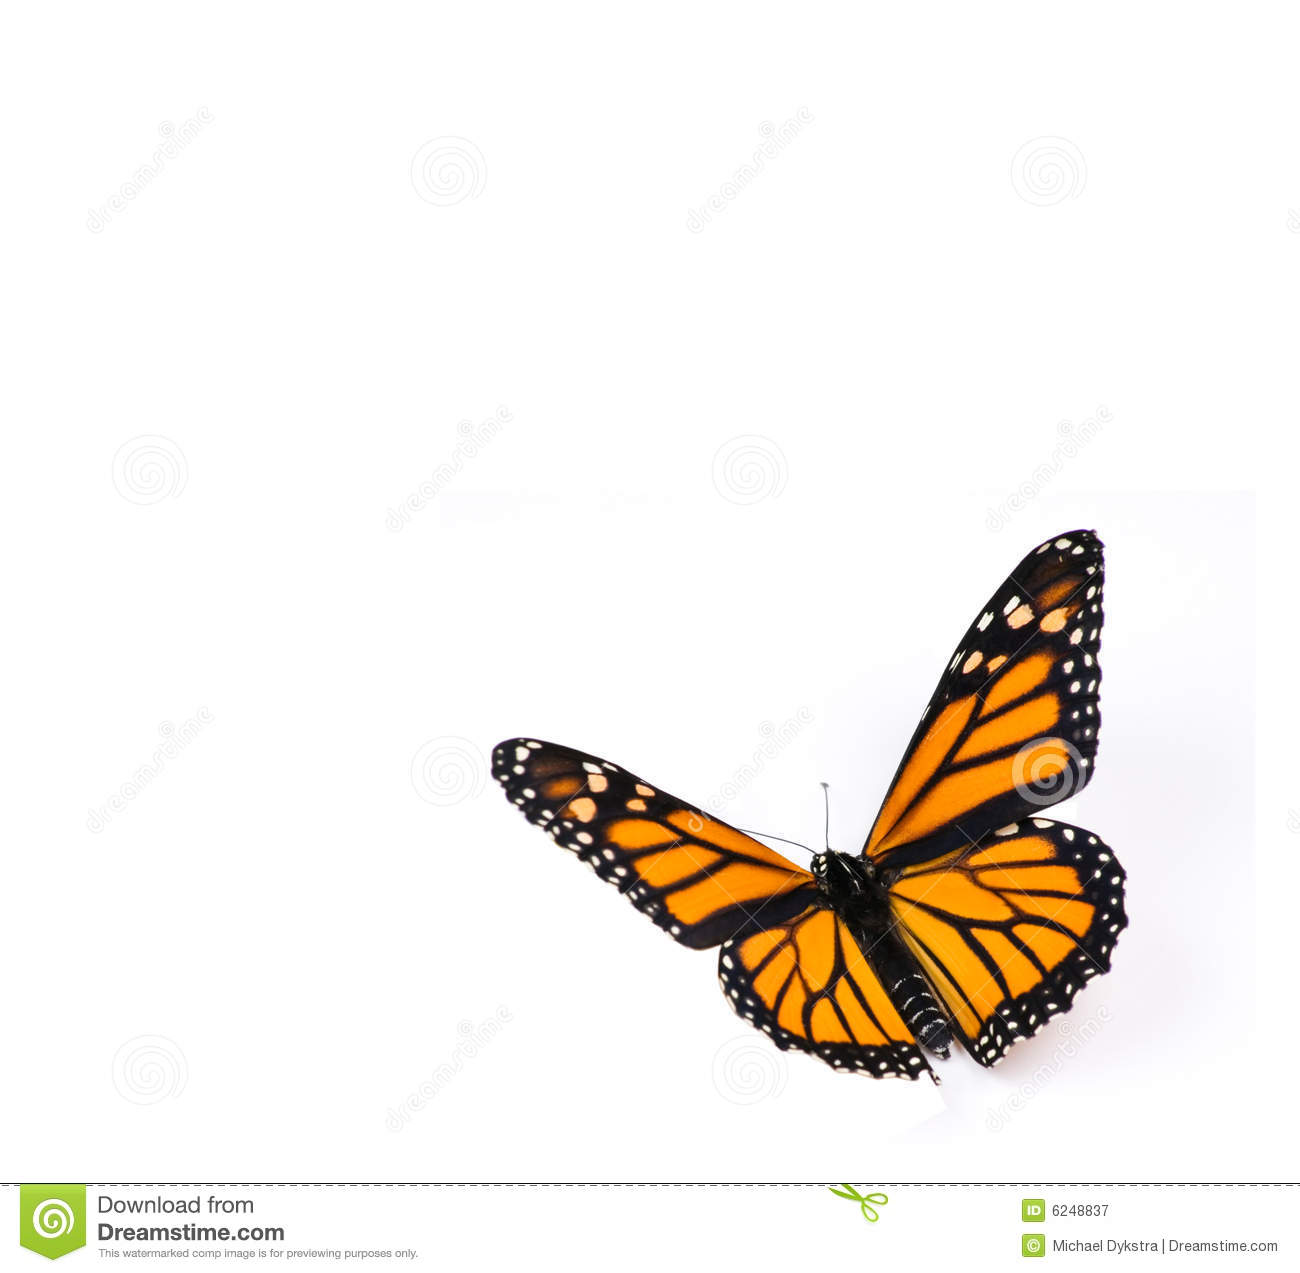 butterfly dating service On bumble, women make the first move we're leveling the playing field and changing the dynamics of dating we believe relationships should begin with respect and equality.